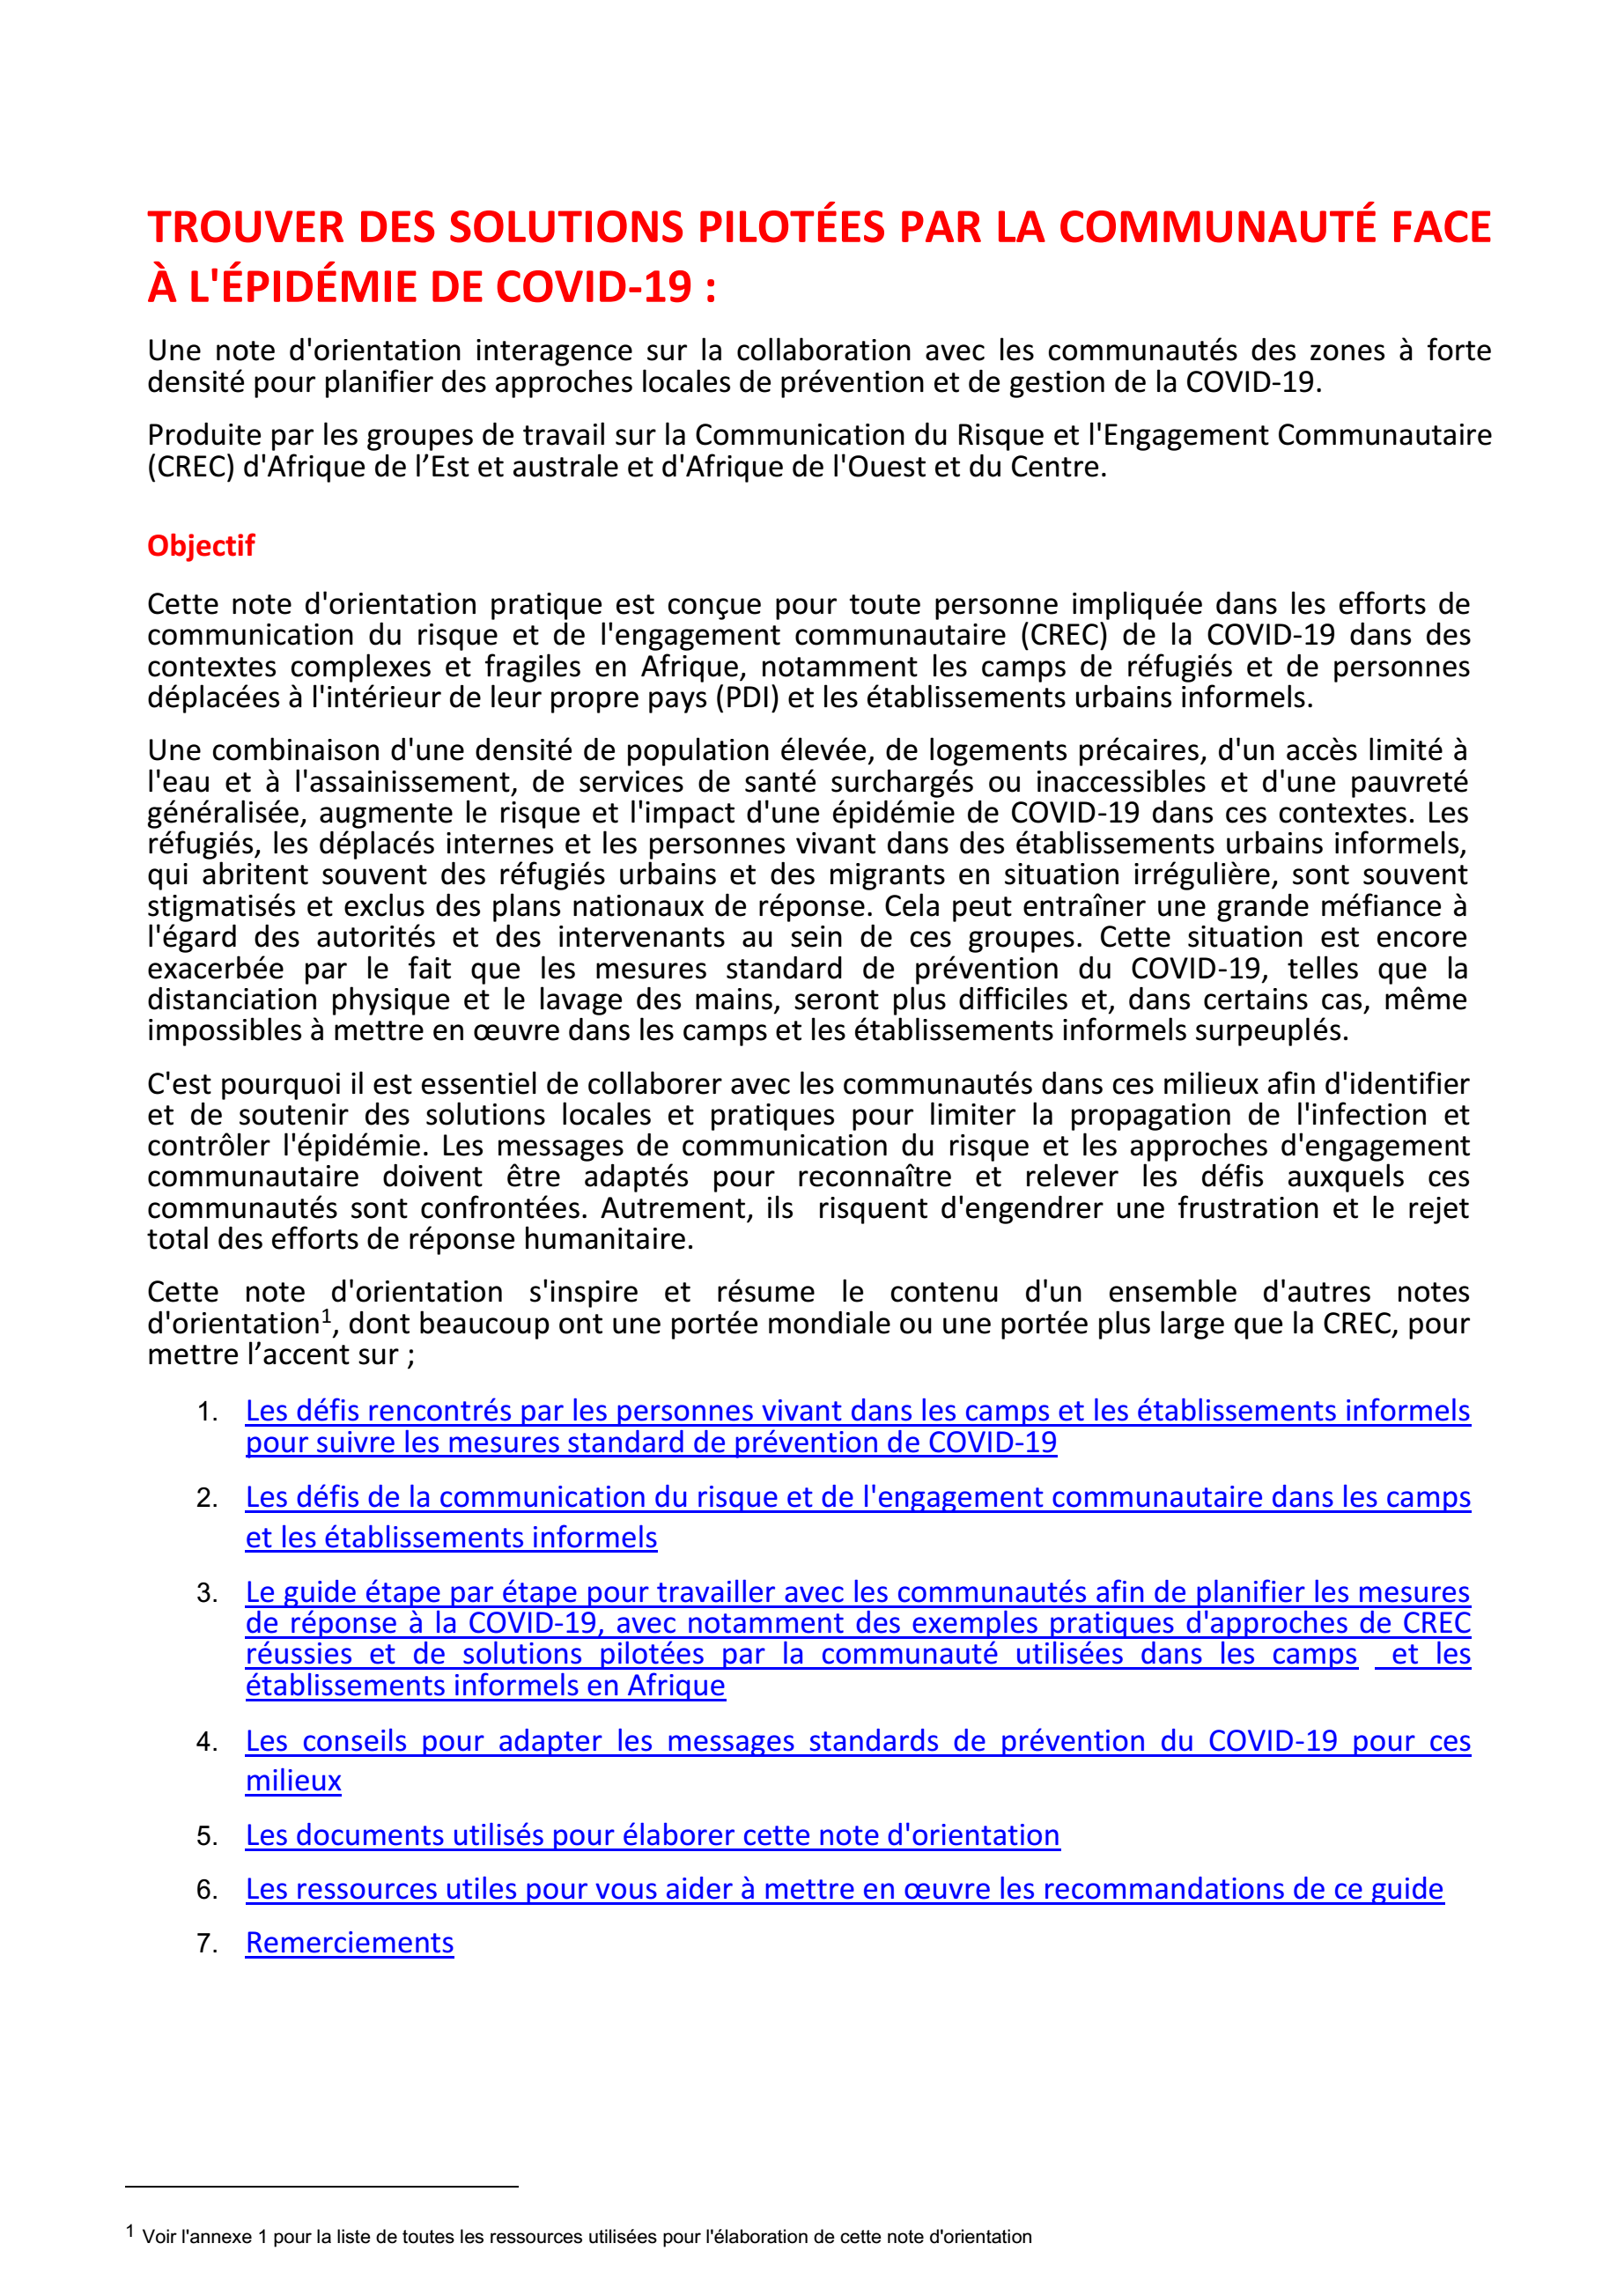 Community_Led_Solutions_COVID-19_Africa_Interagency_Guidance Note_FRA